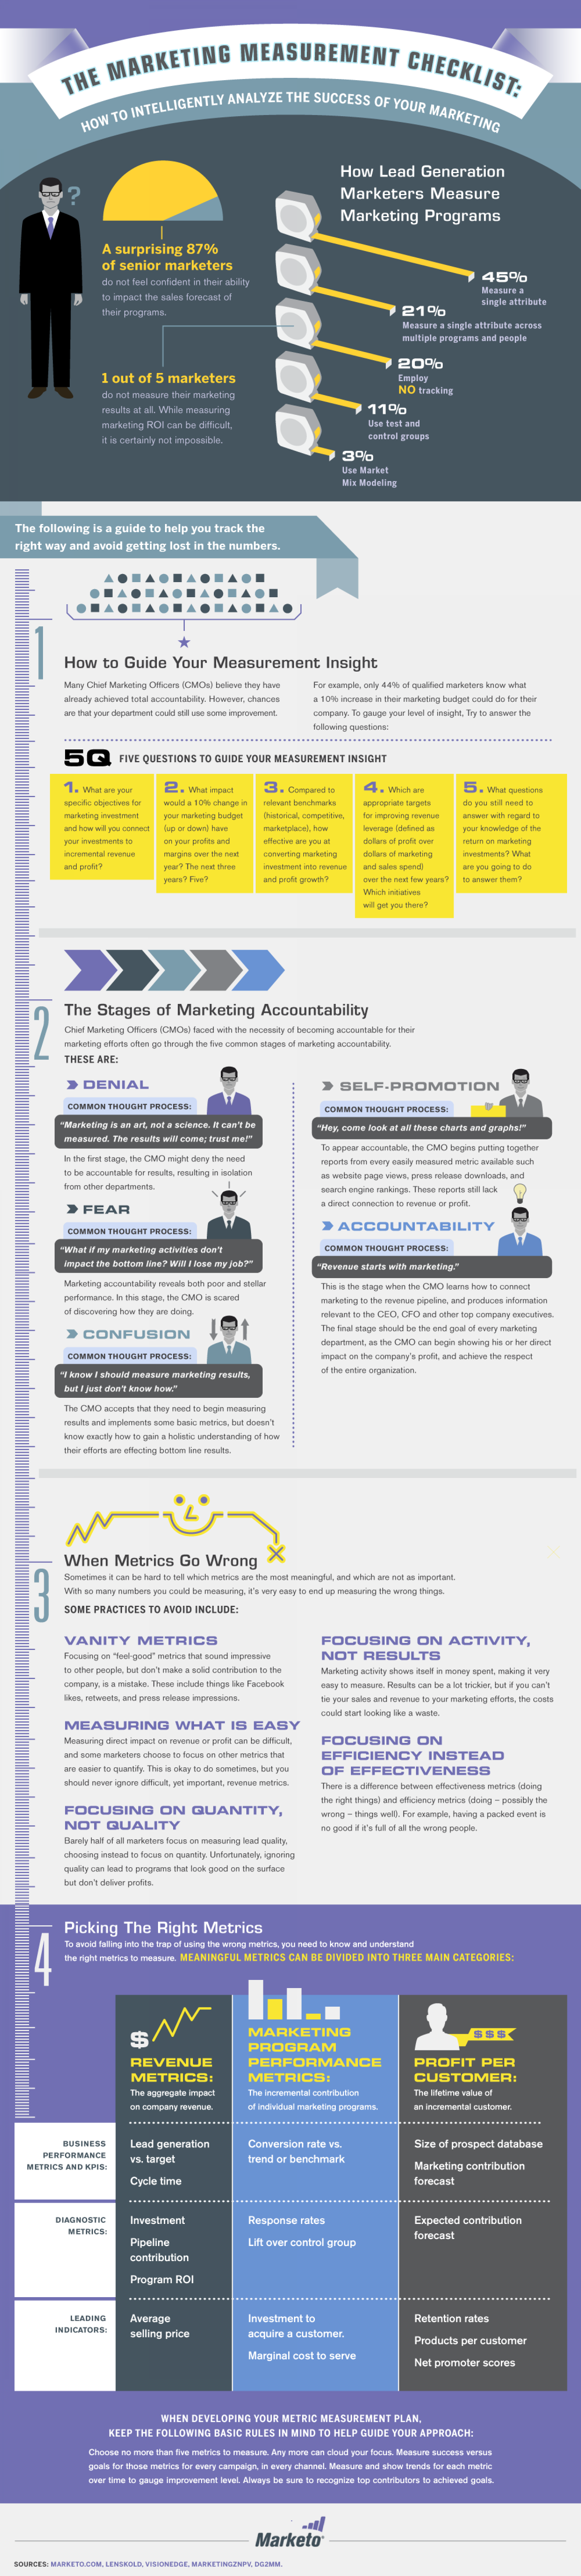 The Marketing Measurement Checklist Infographic